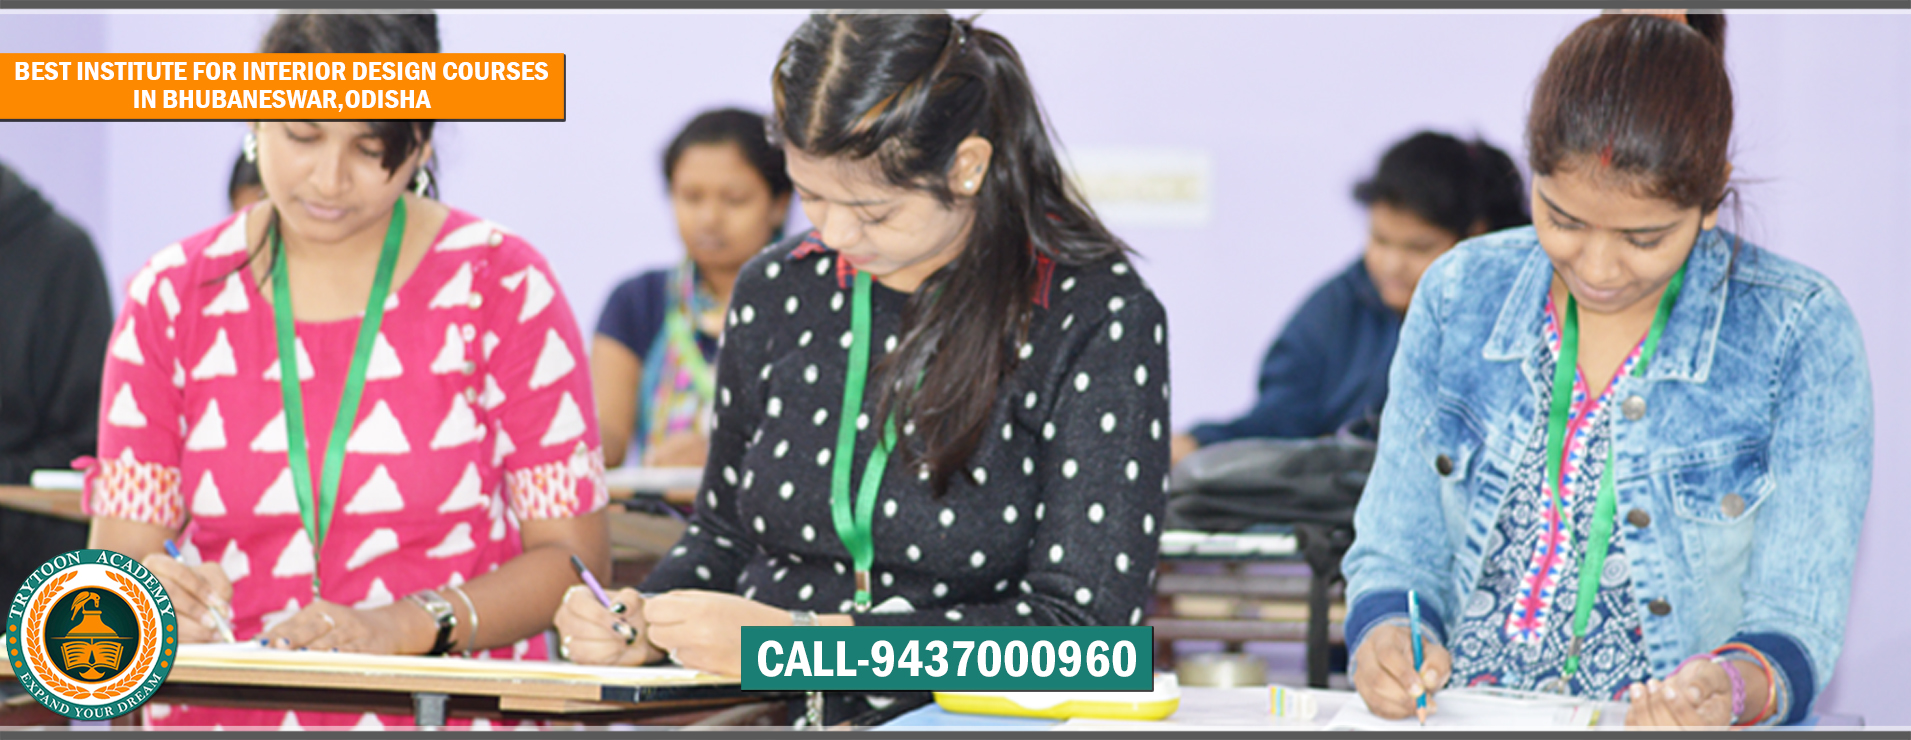 Study Interior Design course for Graduate degree,Diploma and certificate course at Trytoon Academy,Bhubaneswar Odisha for 100% job placements and Internship.